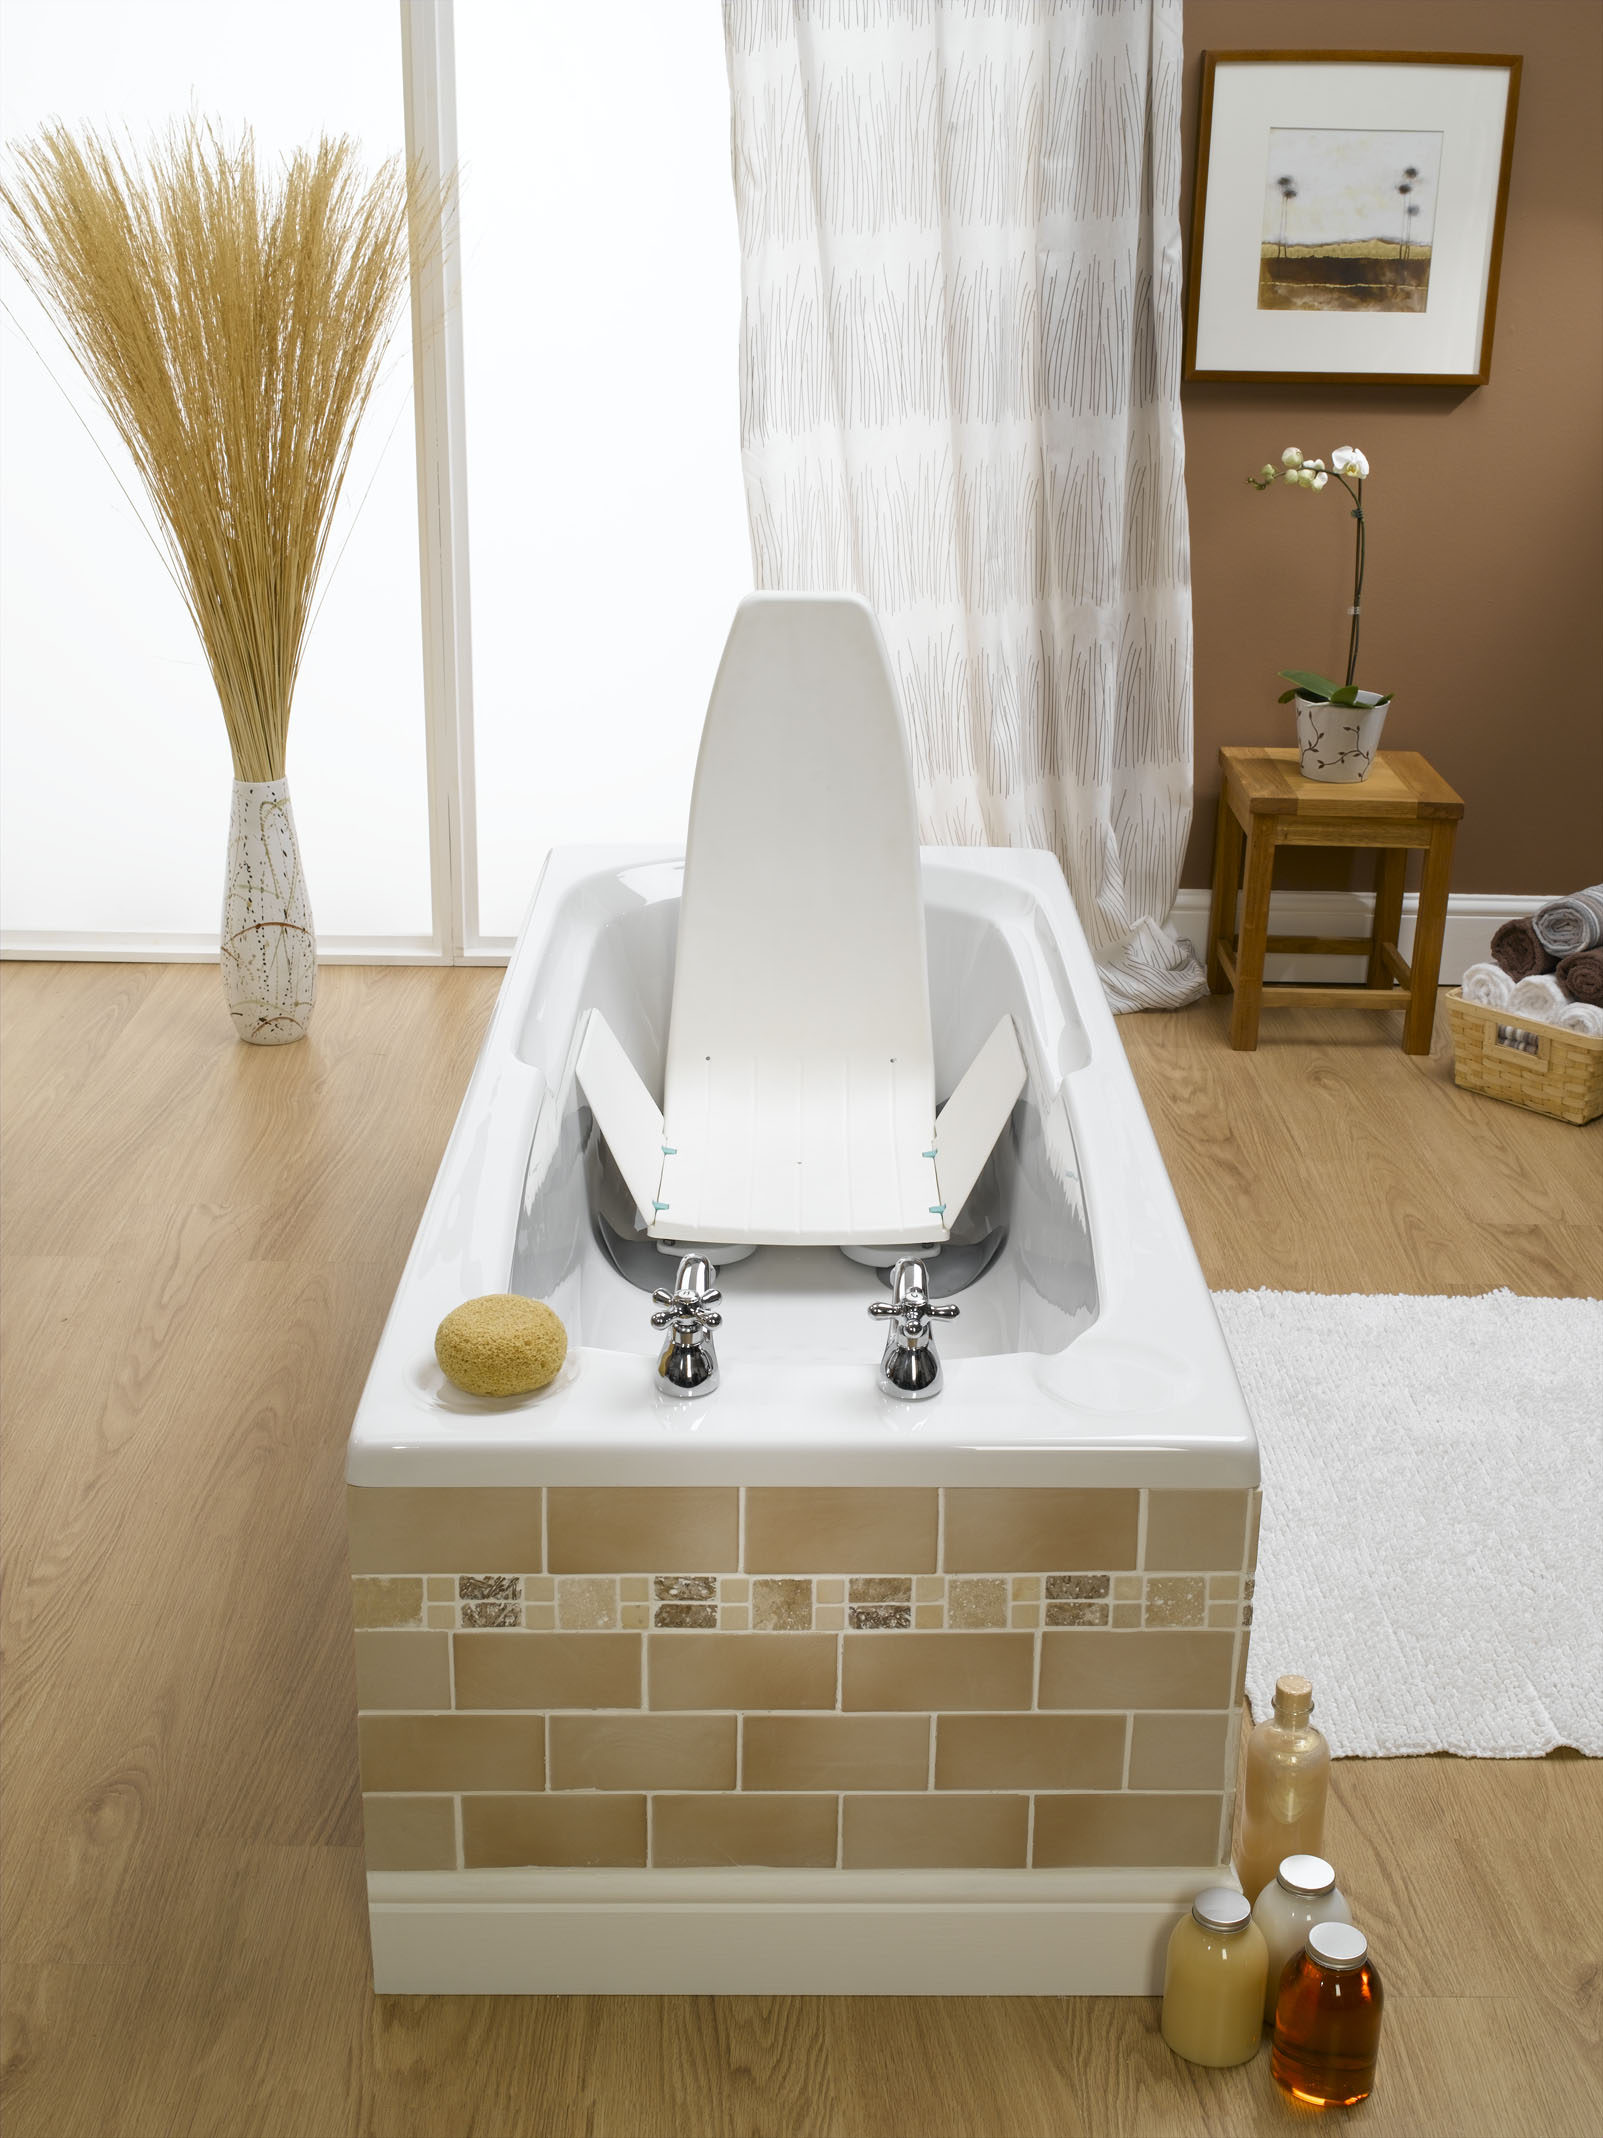 Neptune Bath Lift - Living made easy